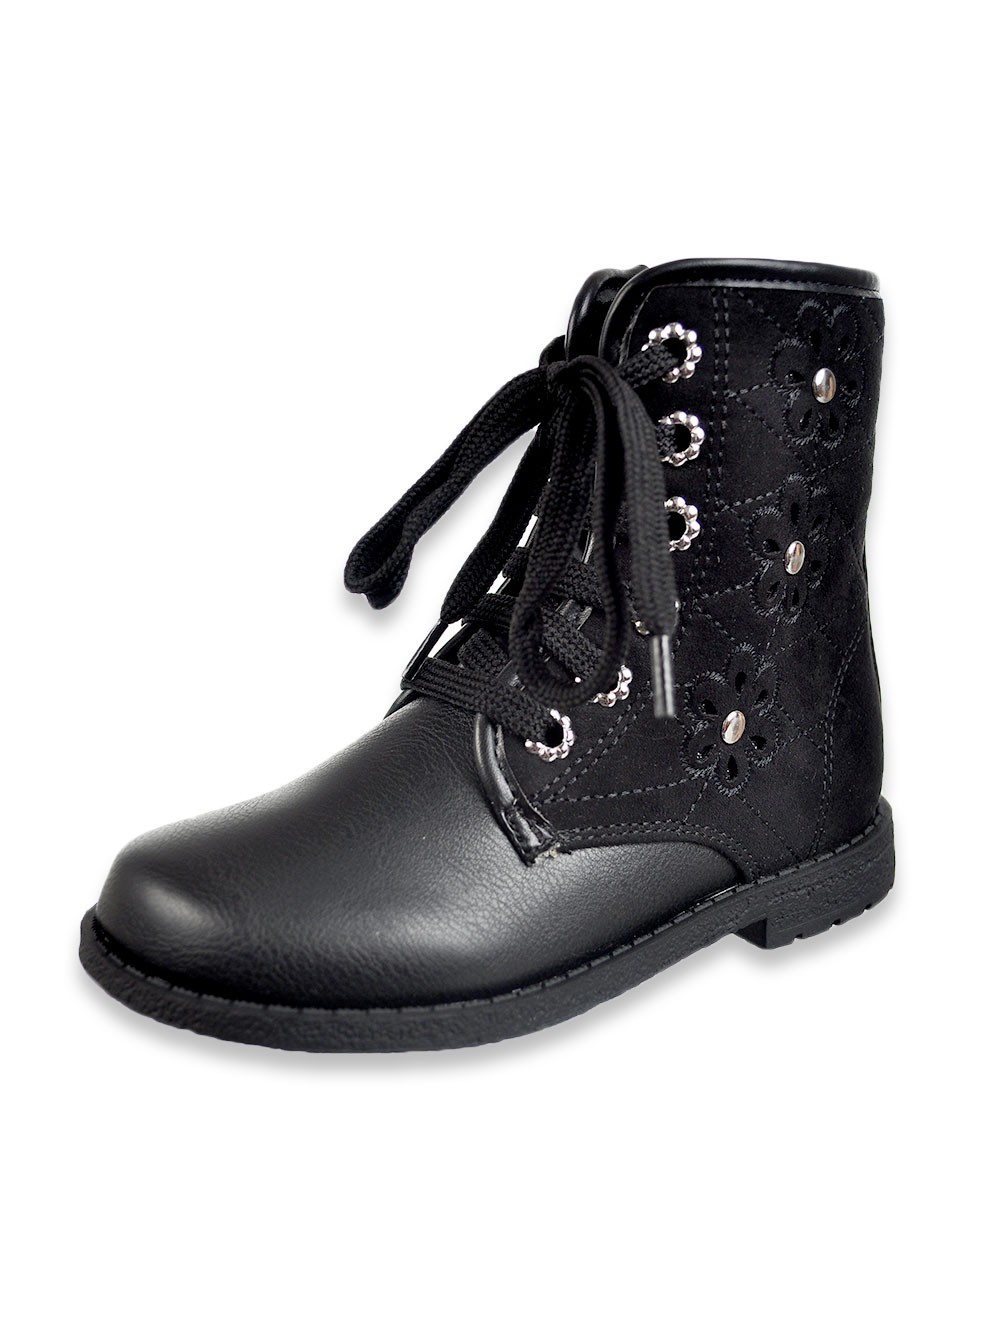 Girls Black Multicolor Boots